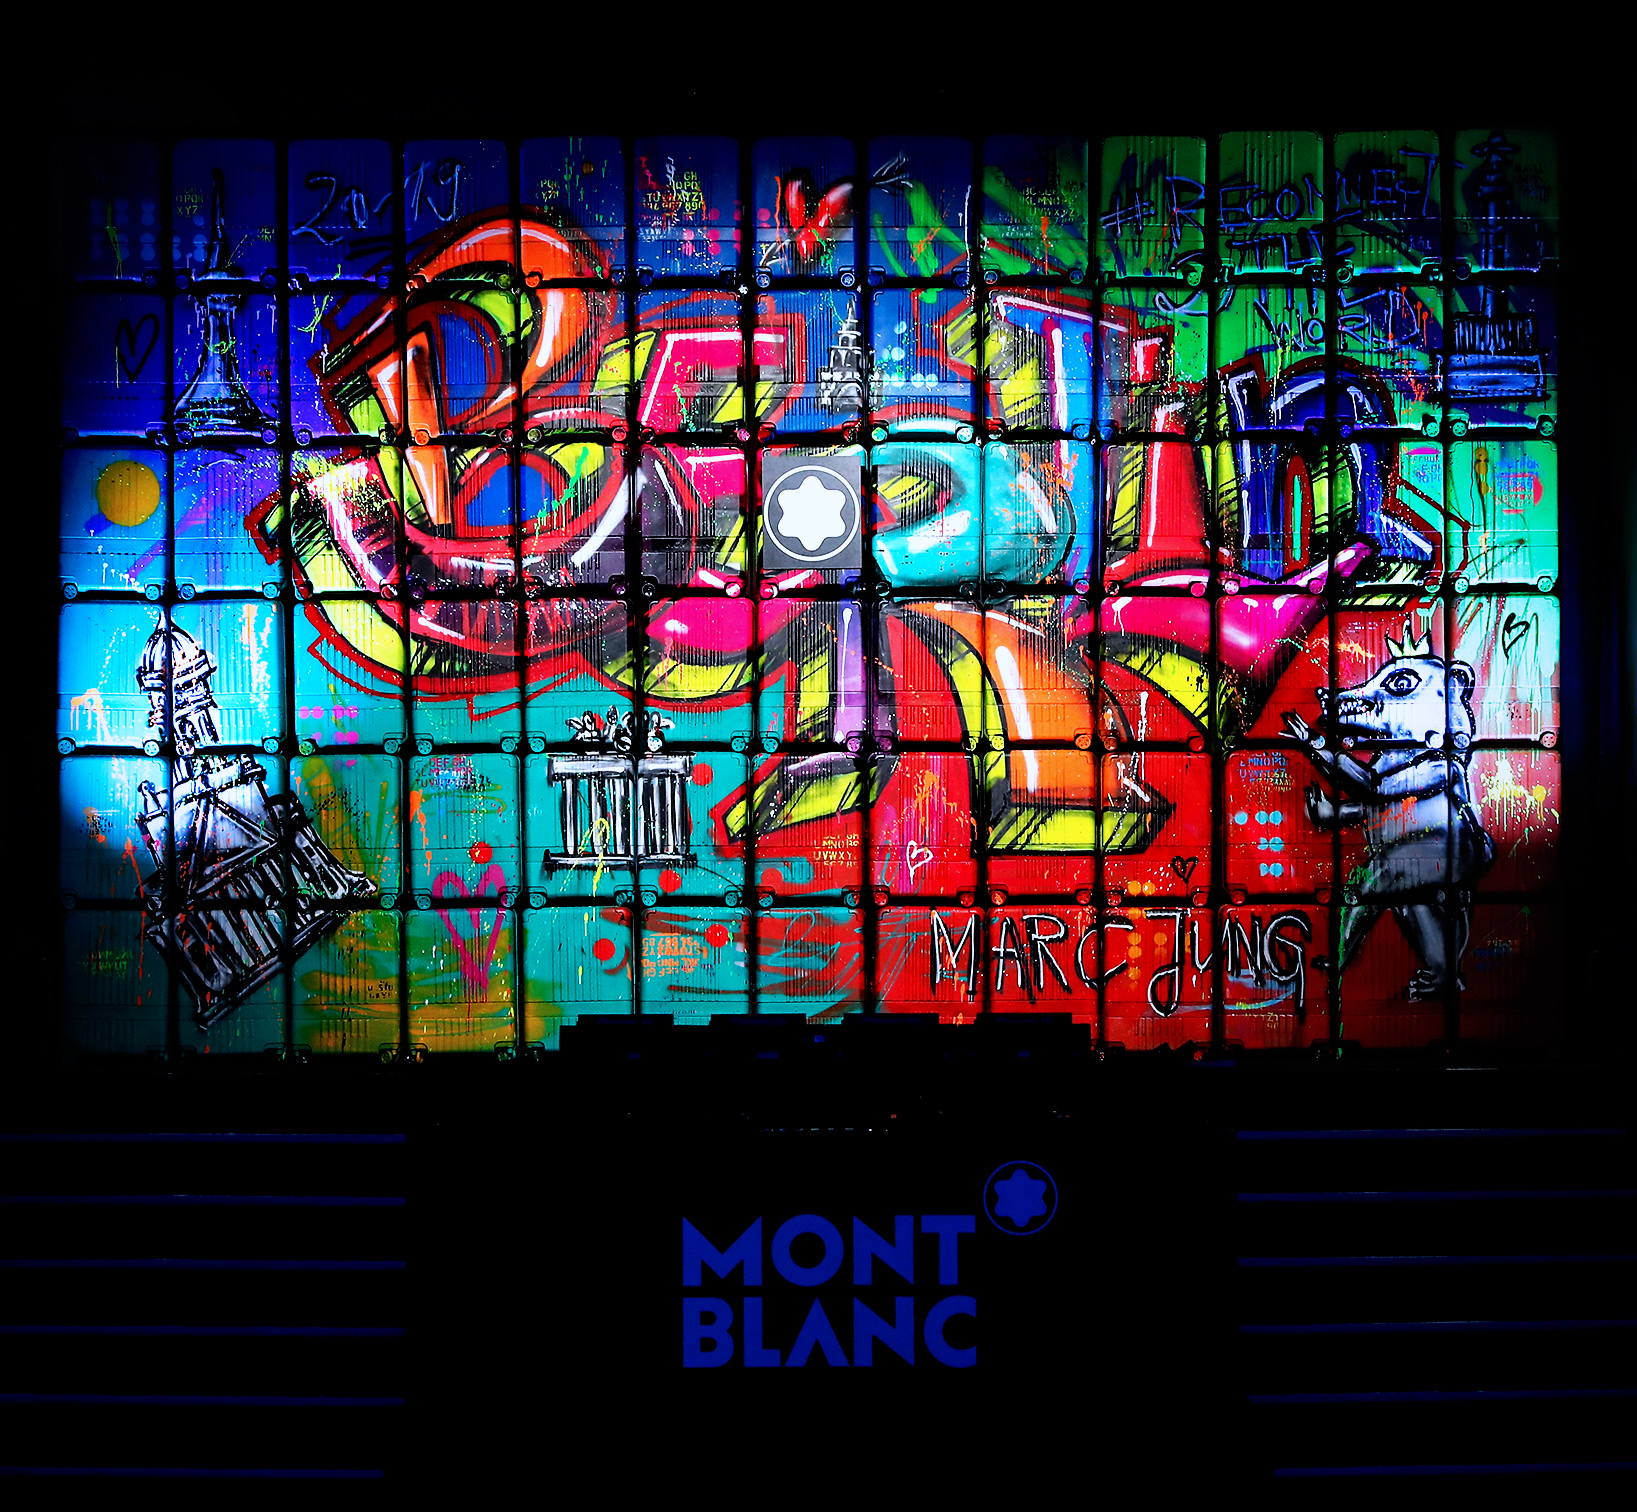 "MARC JUNG X MONTBLANC // ""WALLEY030"", 2019, mixed media on trolley wall, 5x8m, Berlin"